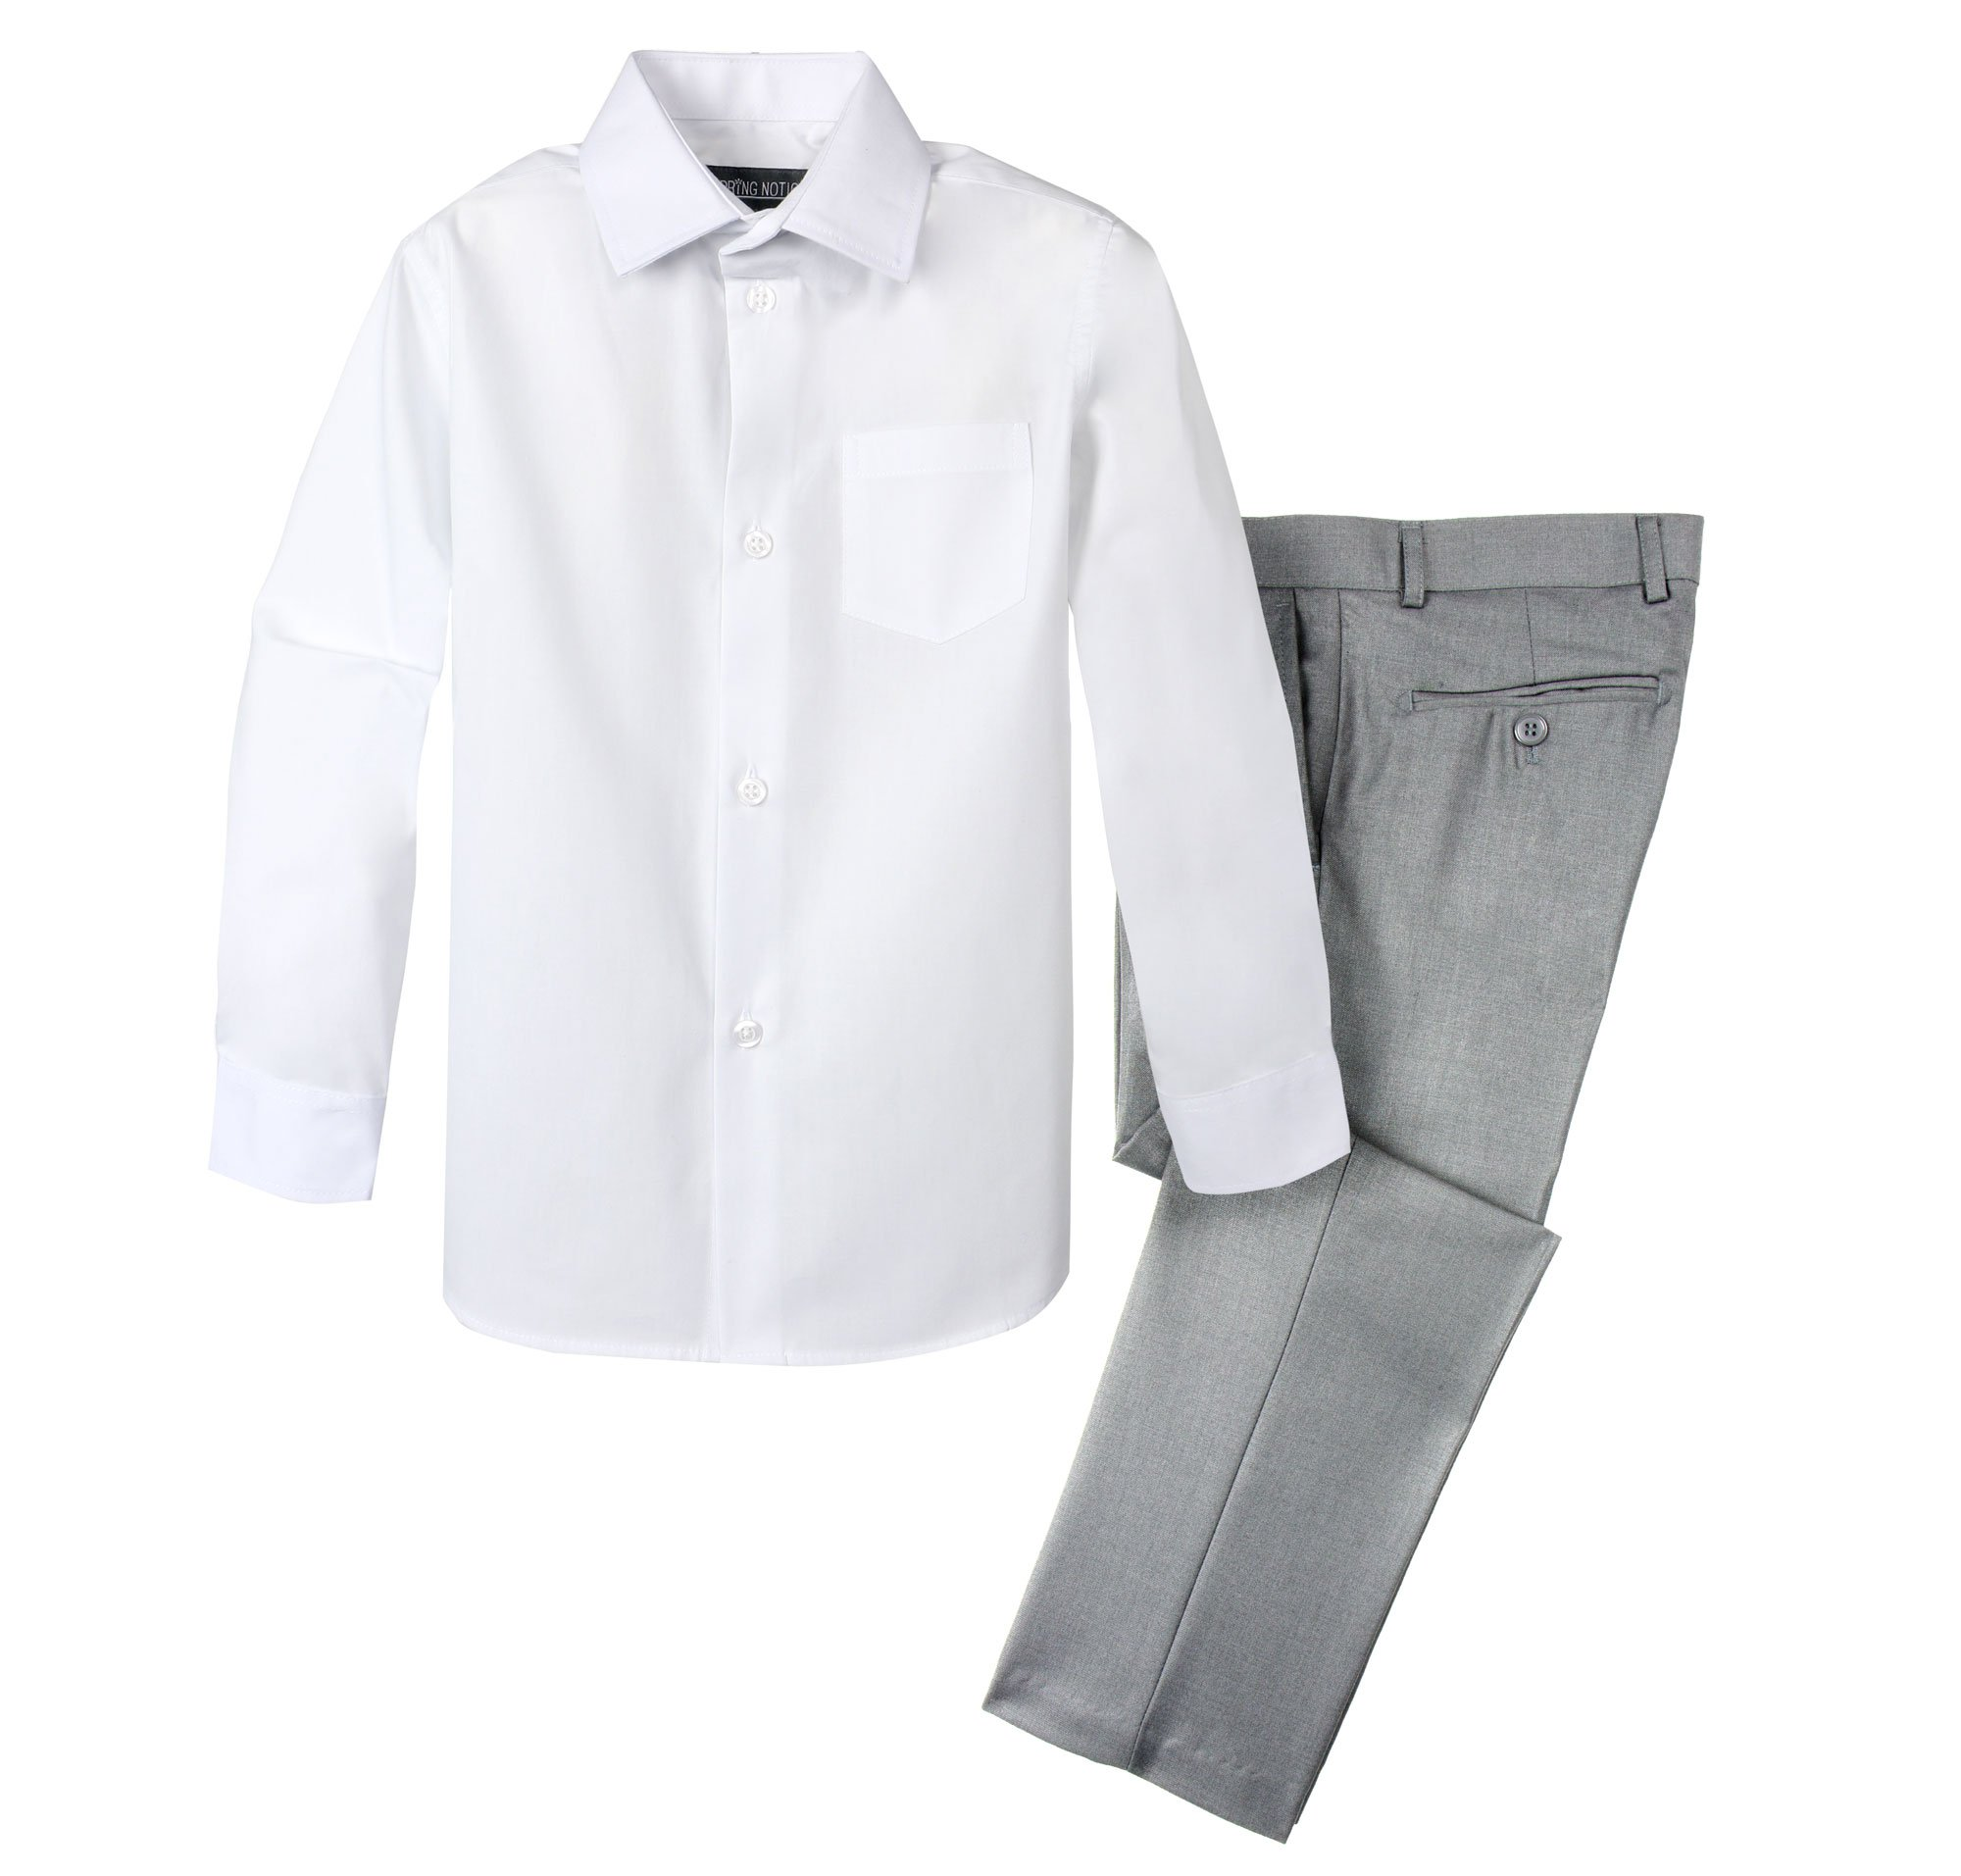 Spring Notion Boys' Dress Pants and Shirt 12 Light Grey/White